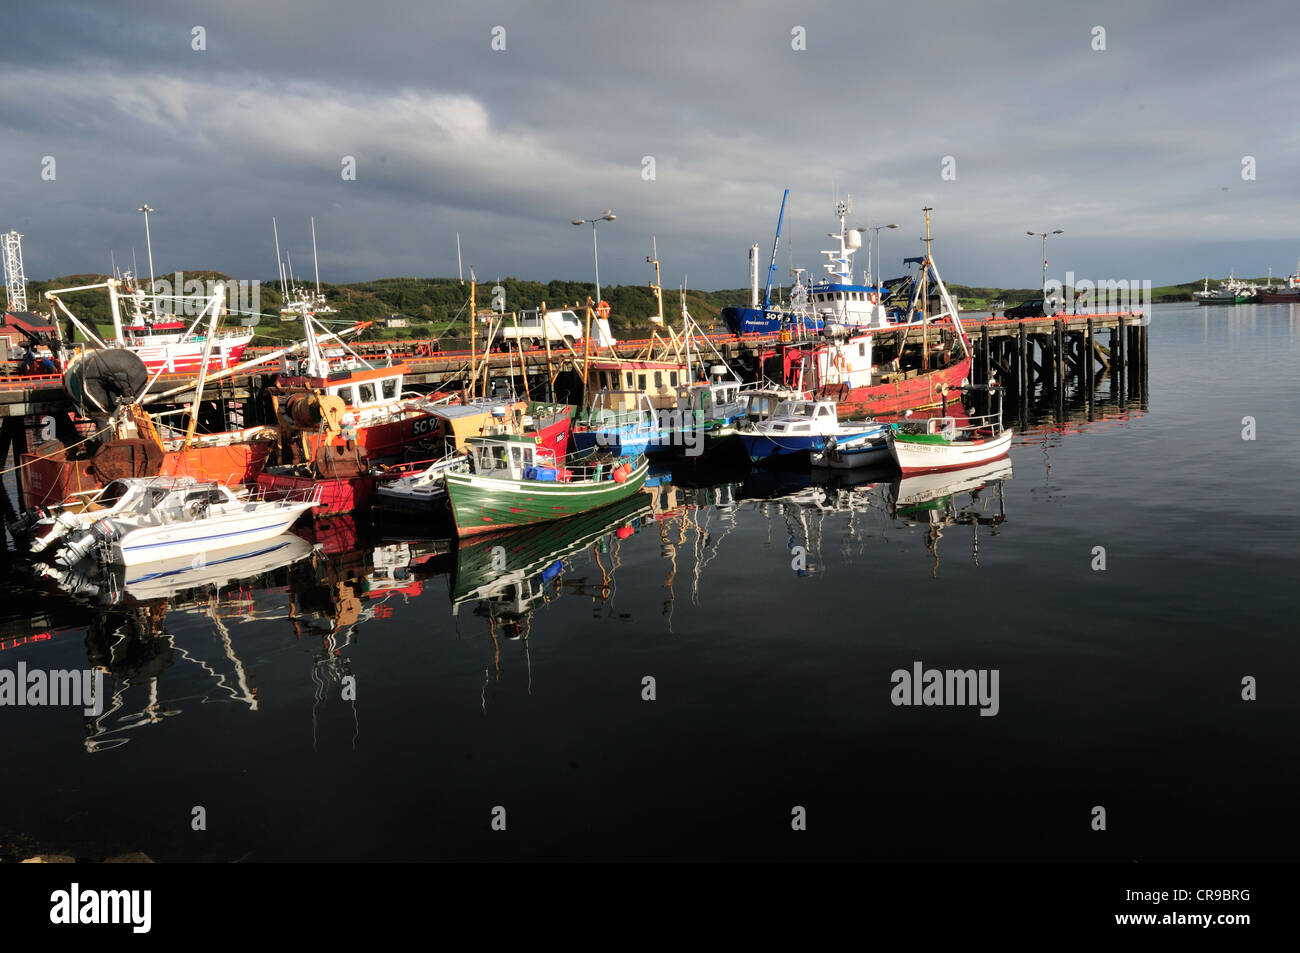 Fishing ships in the Killbegs Harbour, Donegal, Ireland, Europe - Stock Image